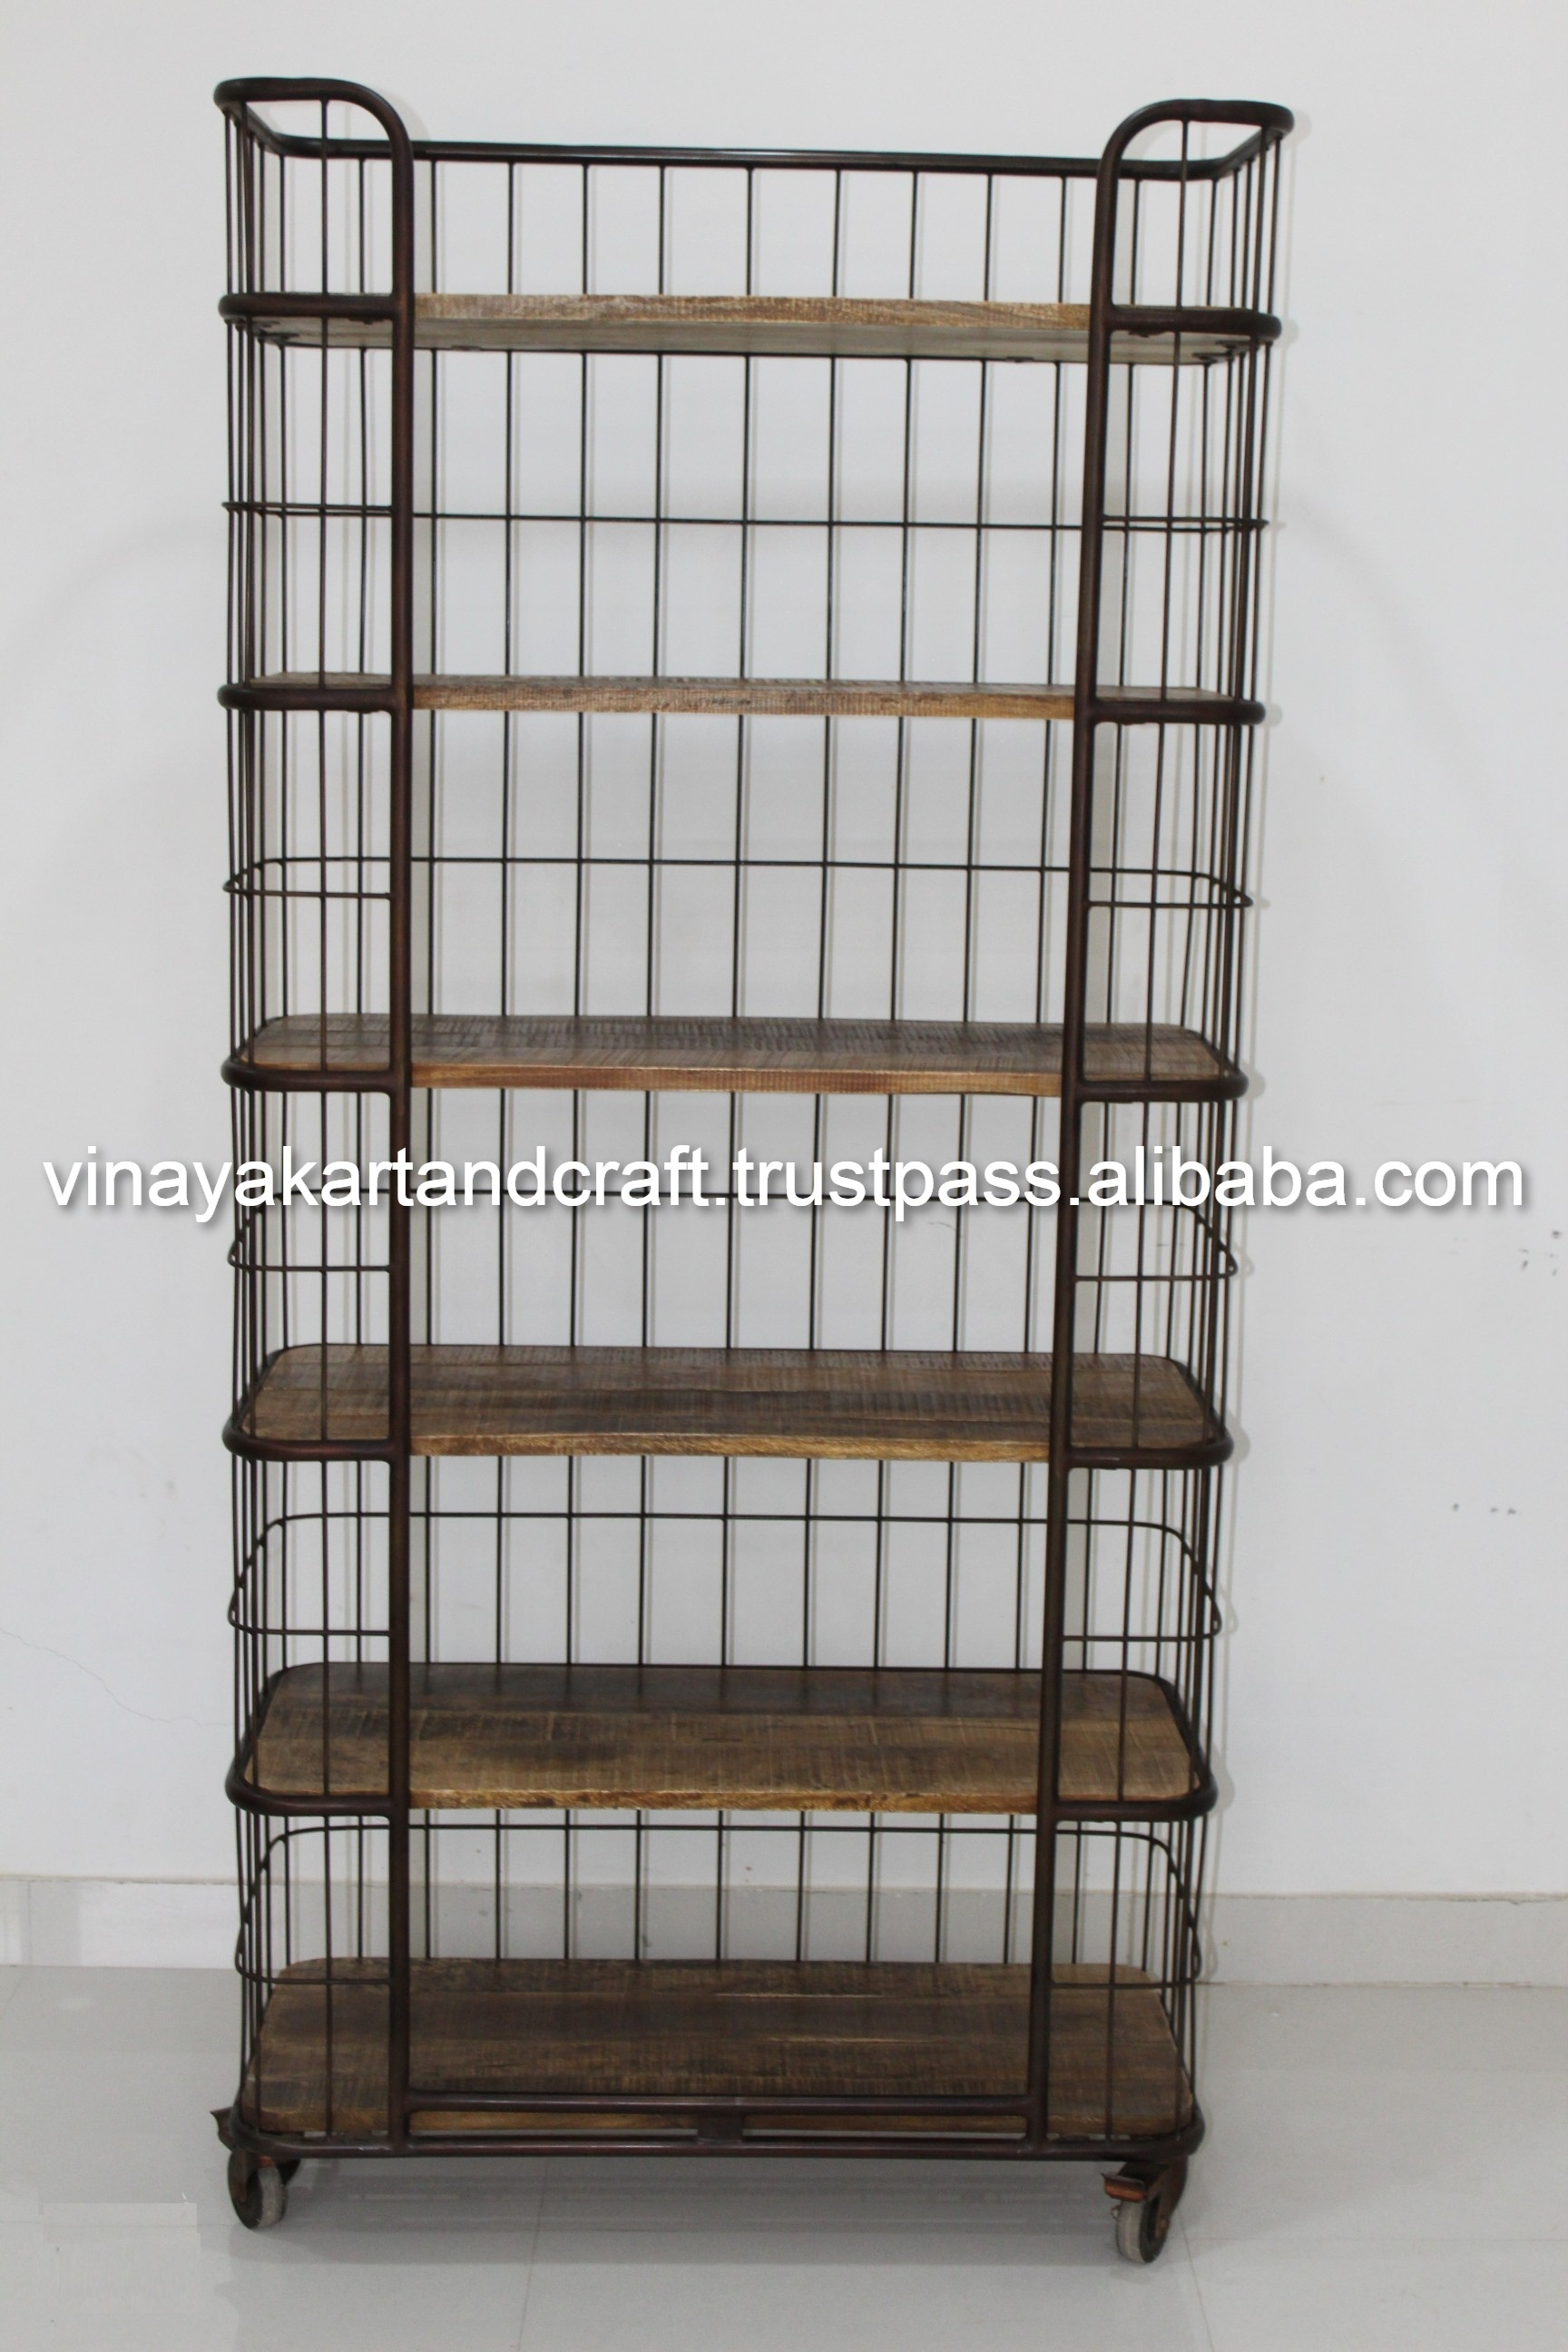 Iron Book Shelf On Wheels Vintage Wooden Multipurpose Library Bookcase Rustic Look Breakfast Kitchen Trolley Movable